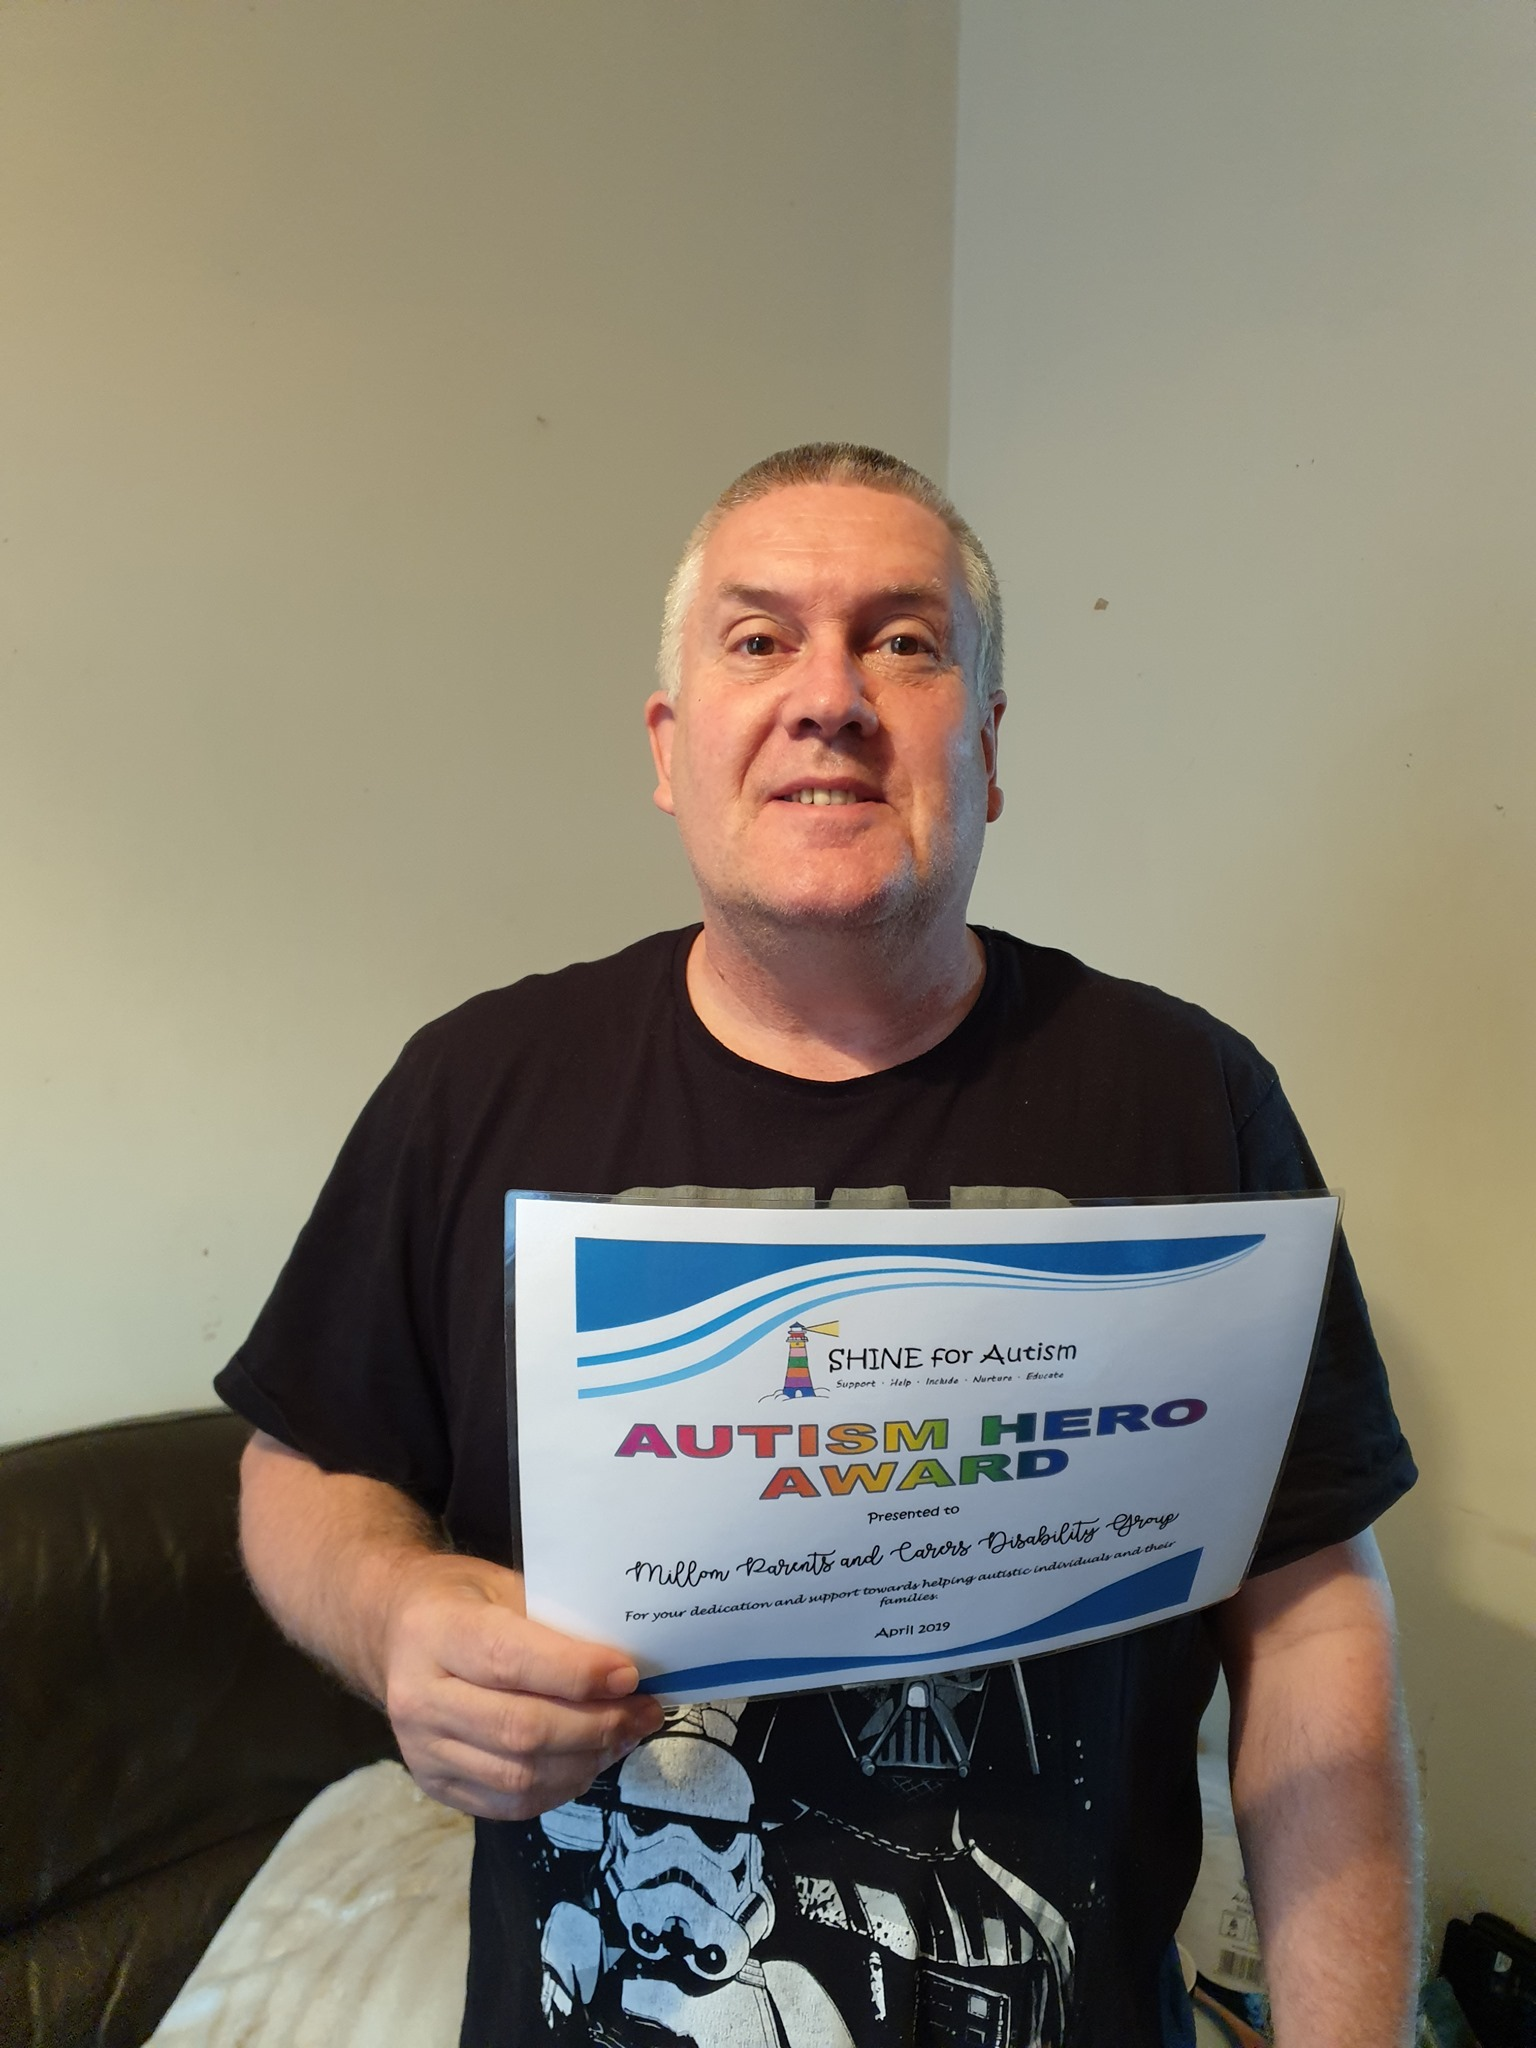 HERO: Jonathan King, chairman of charity Millom Parents and Carers Disability Group accepted SHINE for Autism's April Autism Hero Award.